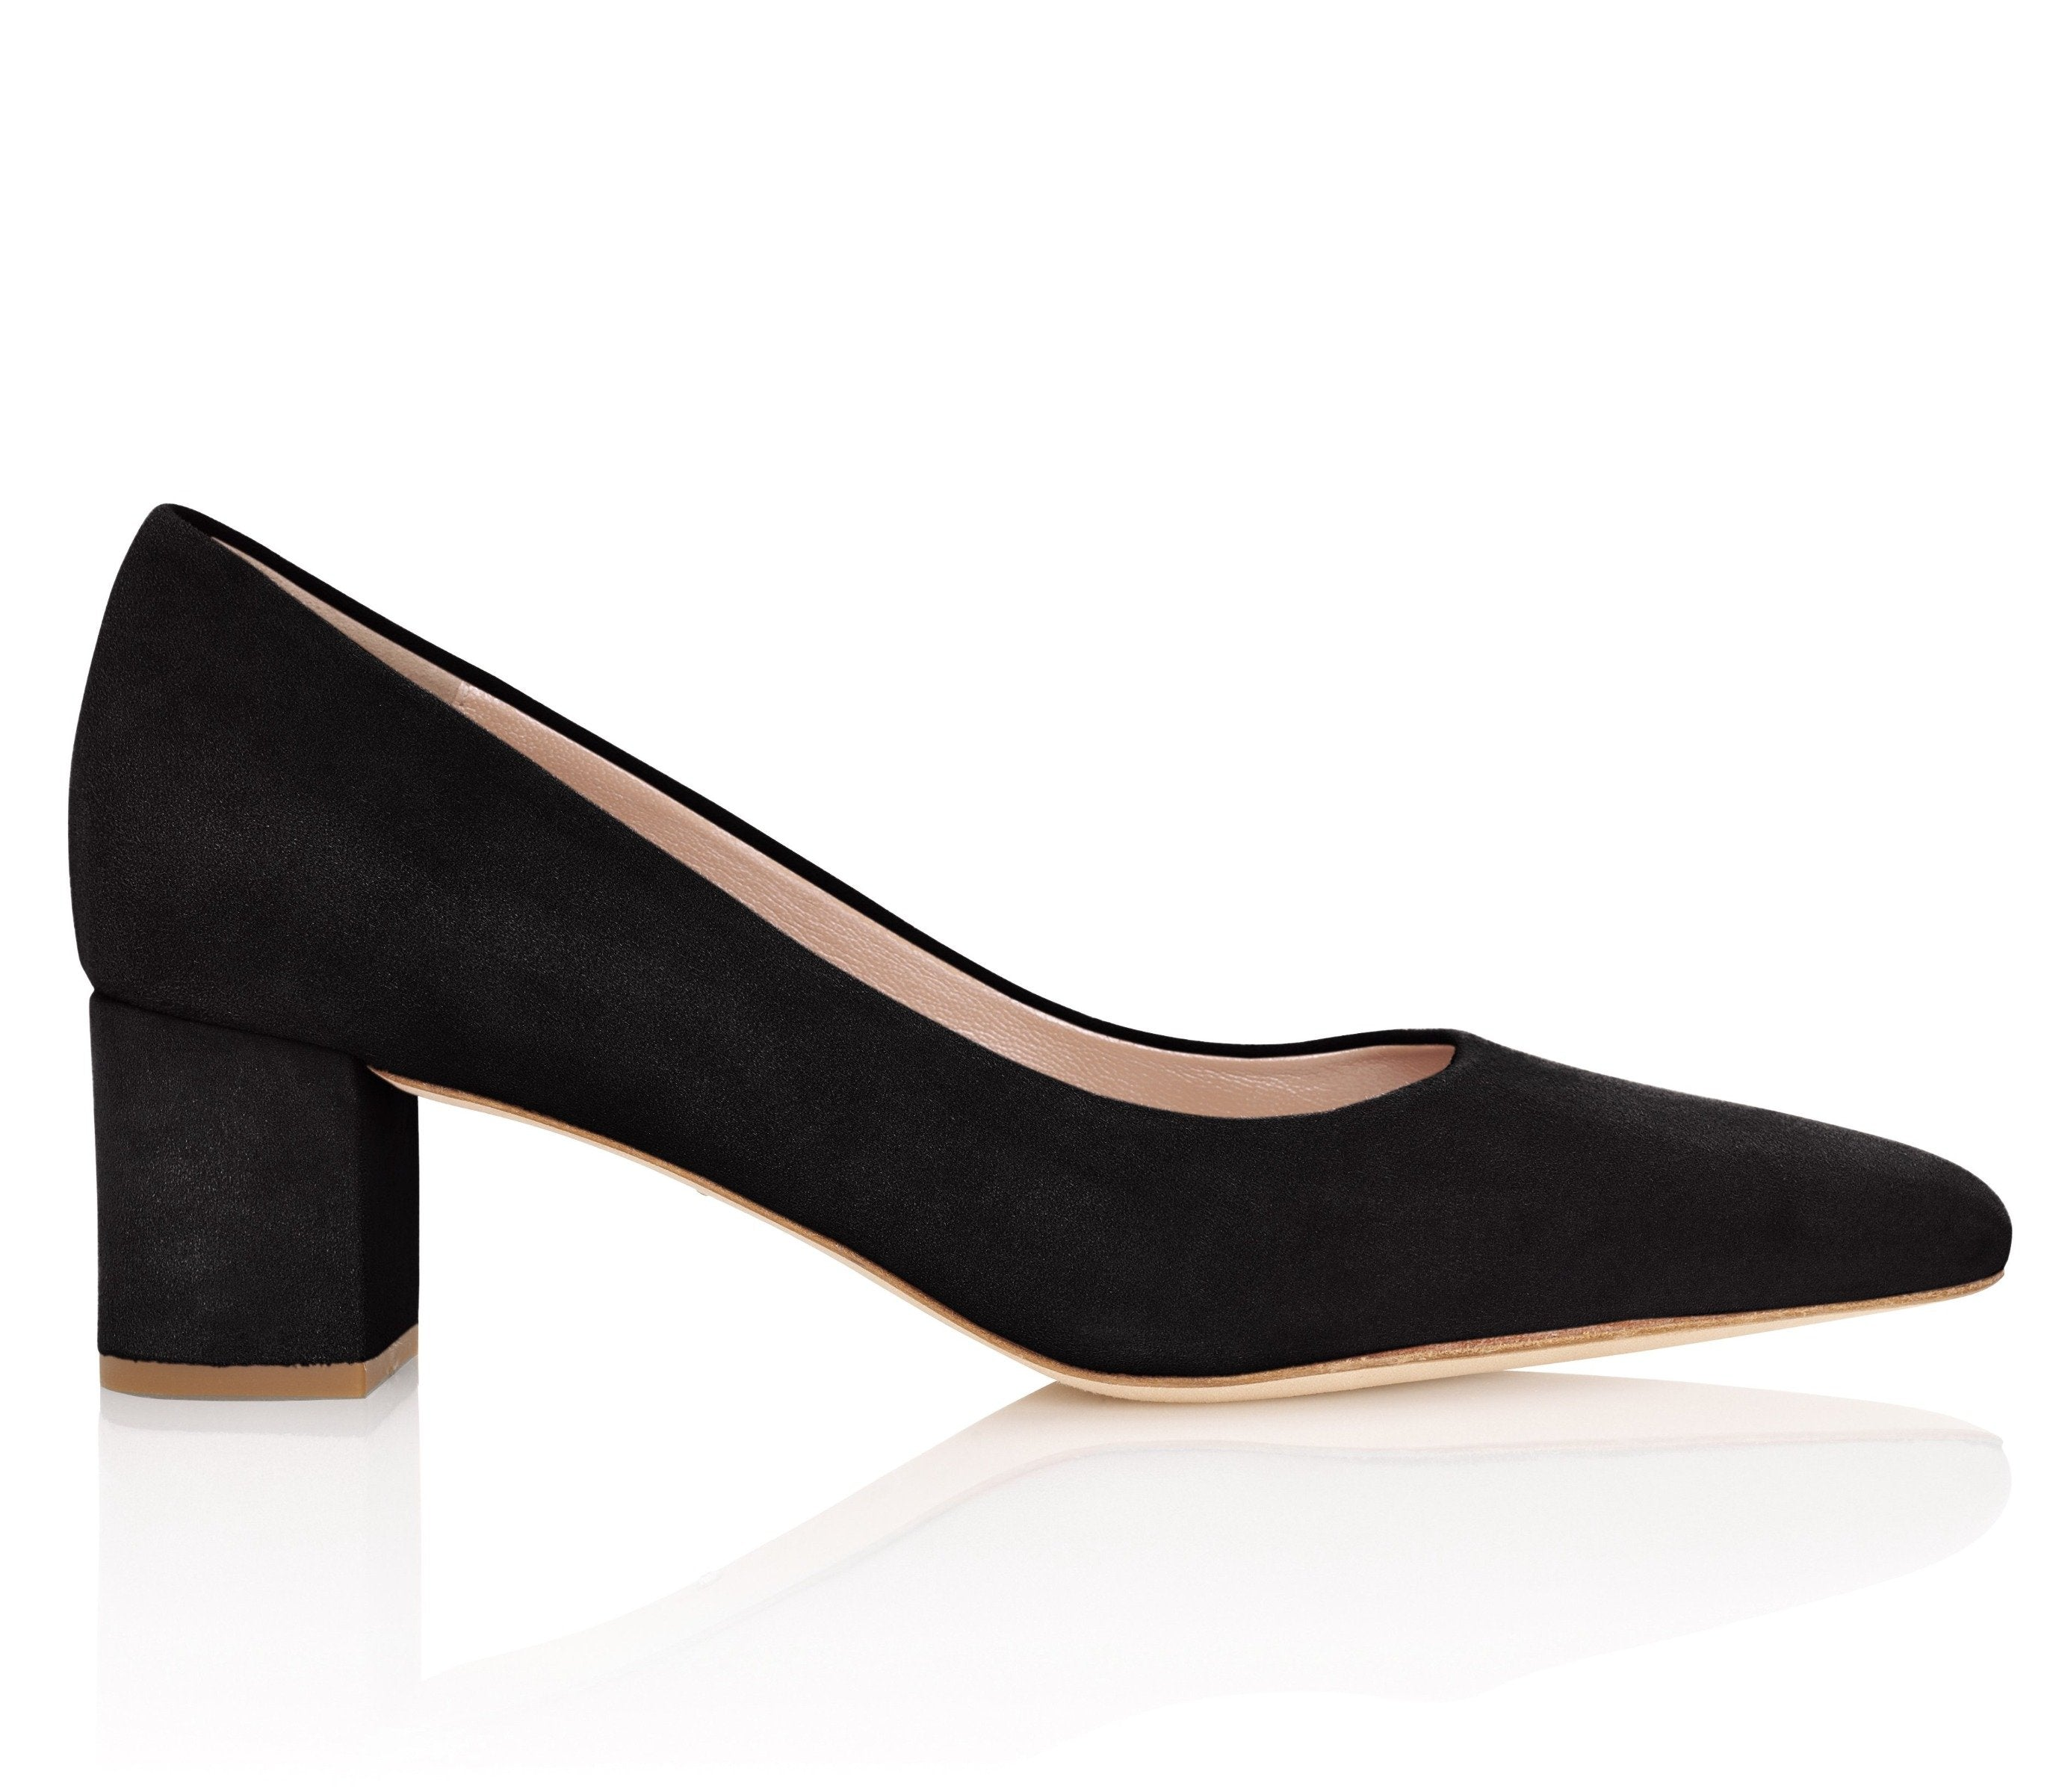 Jet Black Suede Block Heel Court Shoes By Emmy London